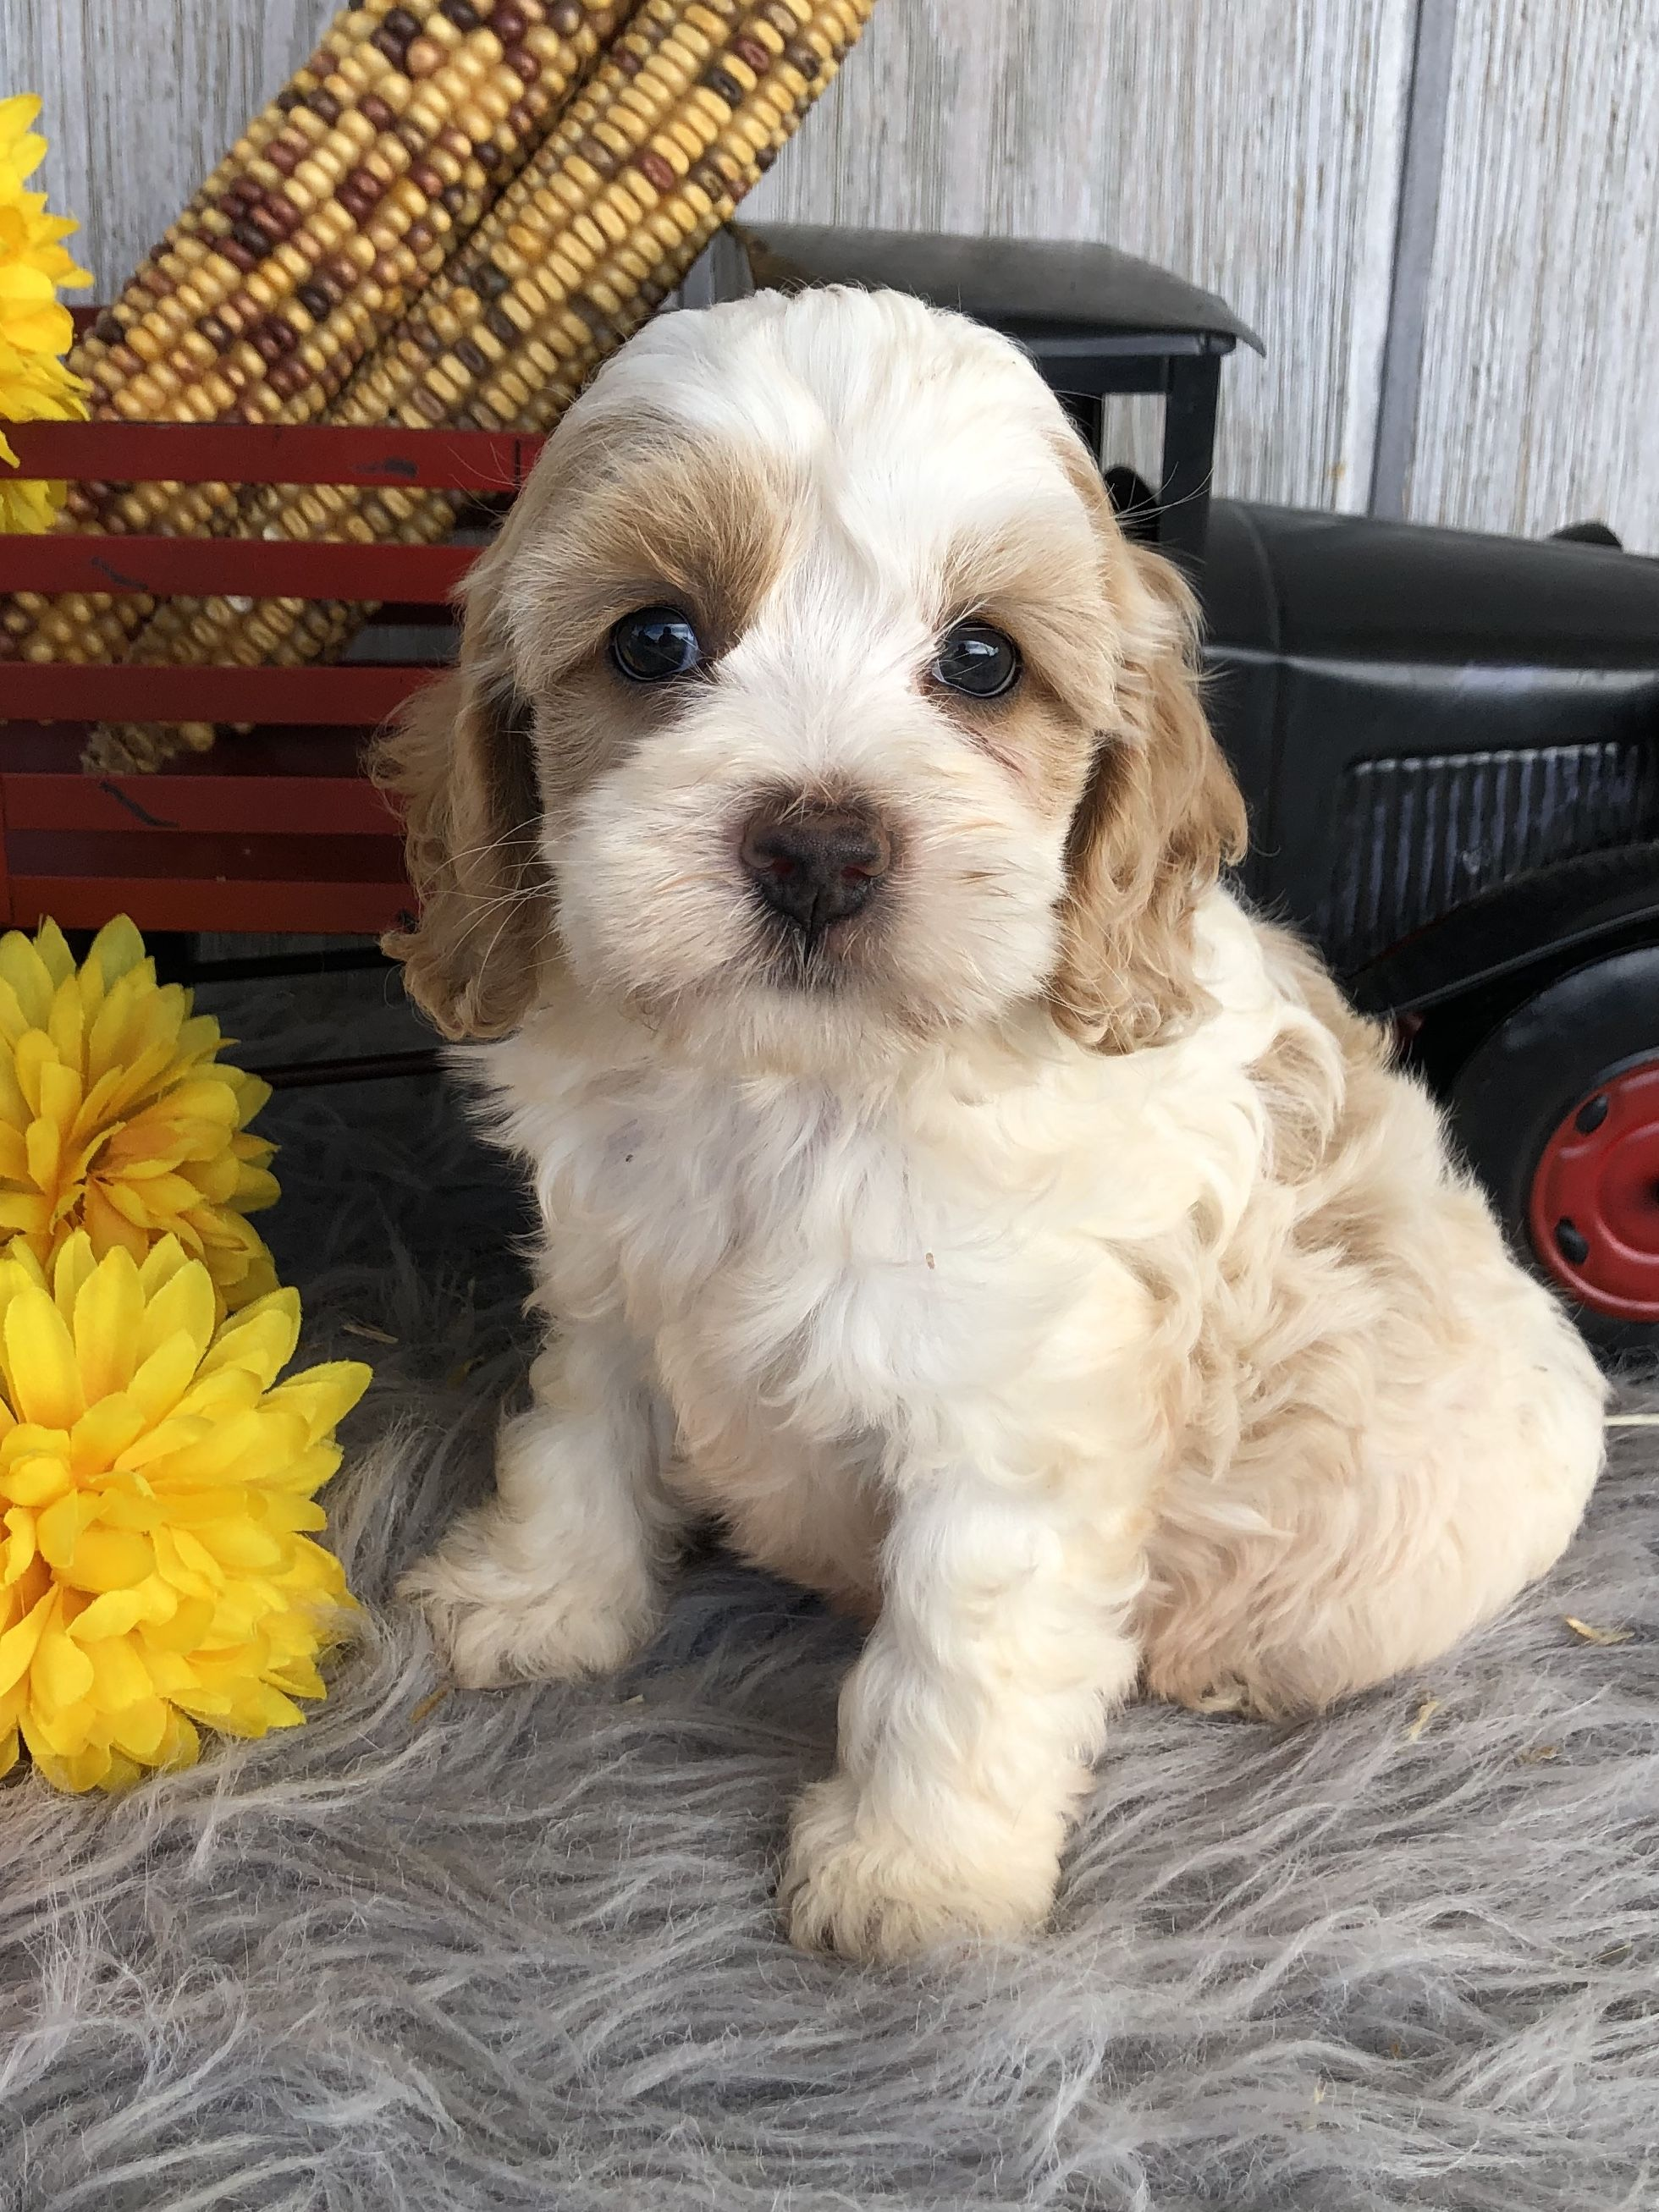 Puppies for Sale Cockapoo puppies, Puppy dog eyes